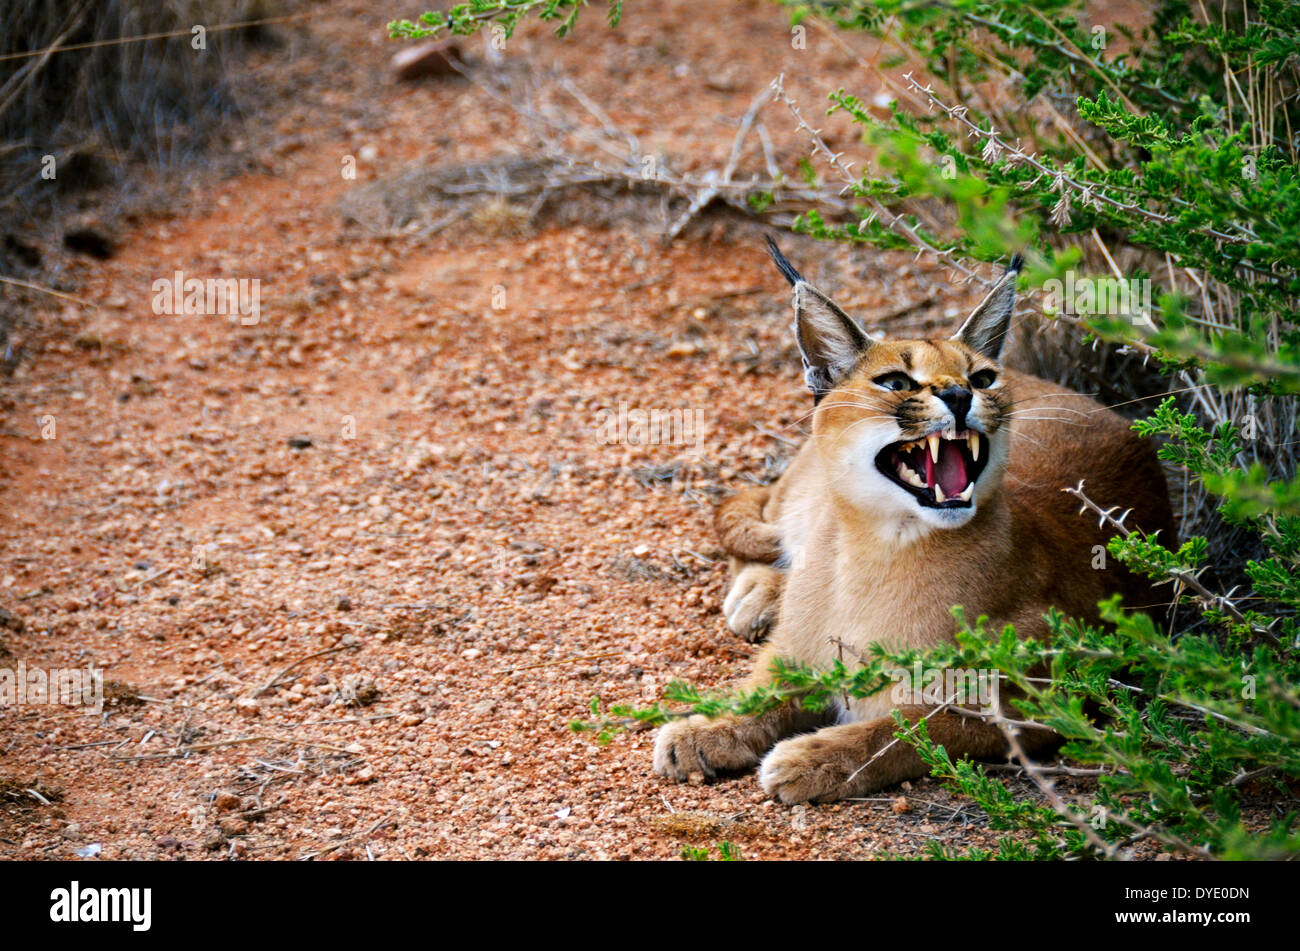 an african caracal cat in Namibia showing its teeth - Stock Image